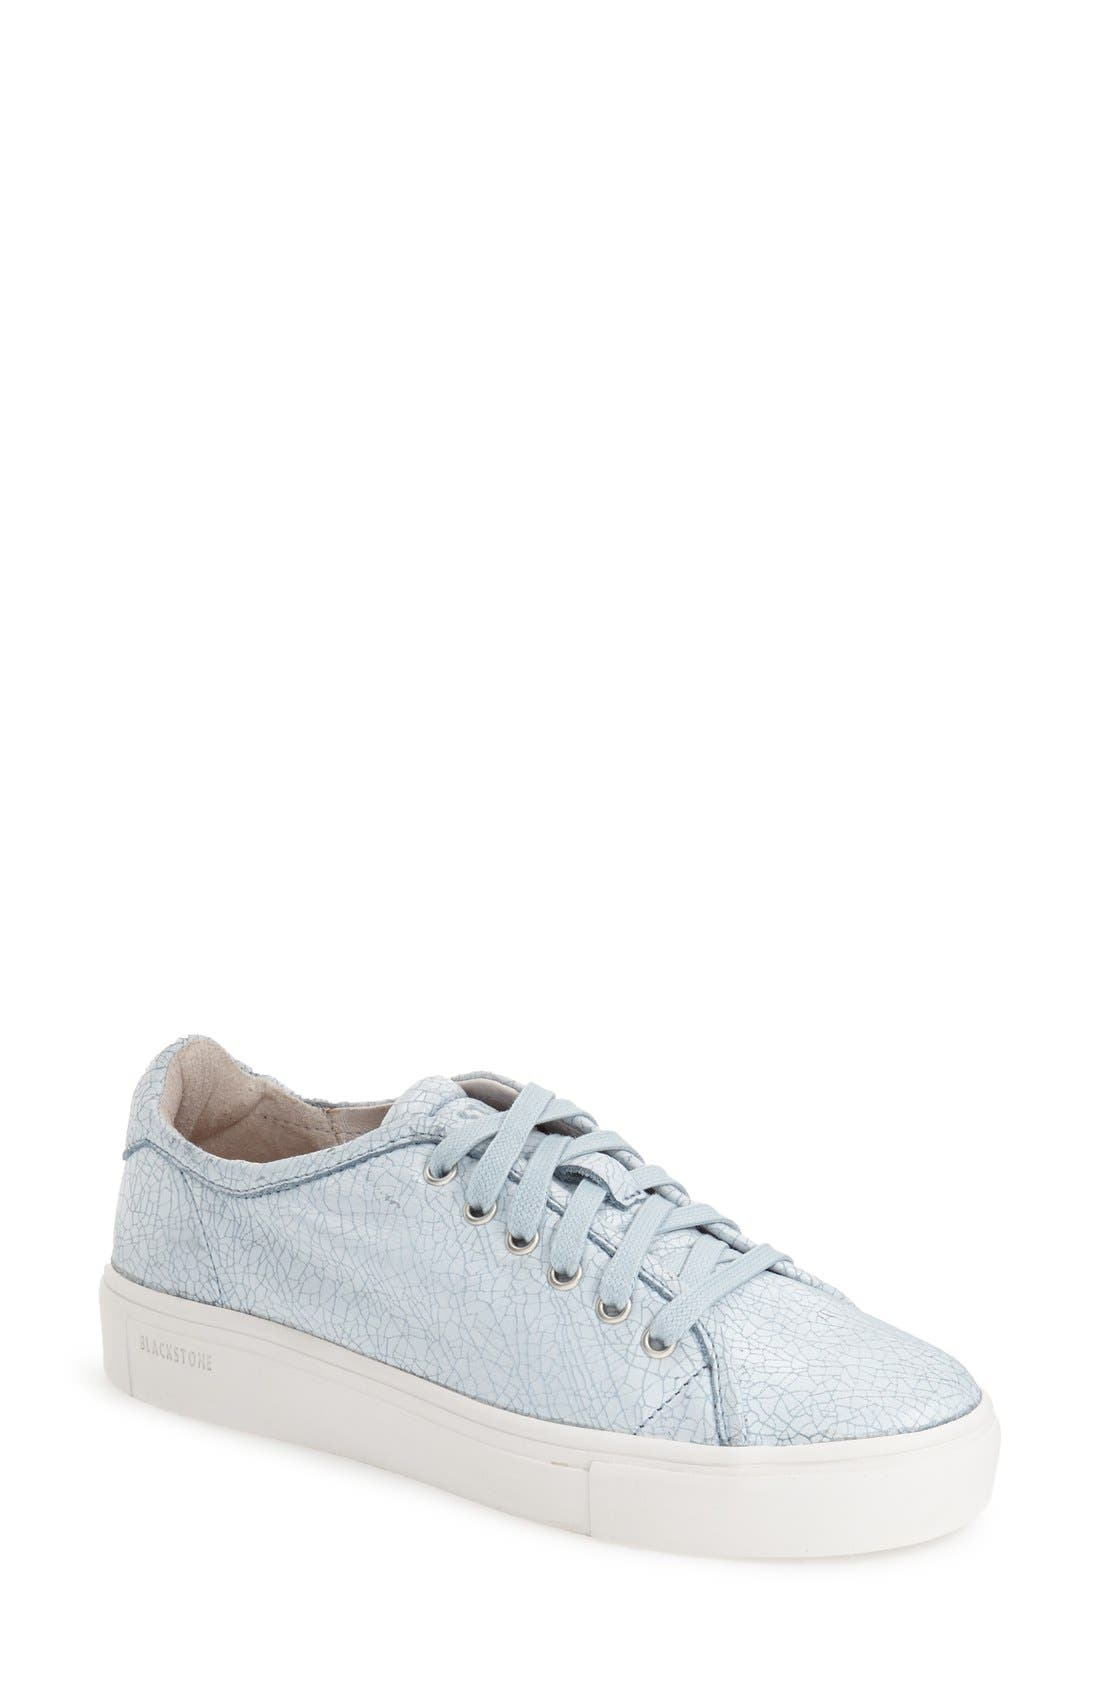 Blackstone 'LL79' Low Top Platform Sneaker (Women)